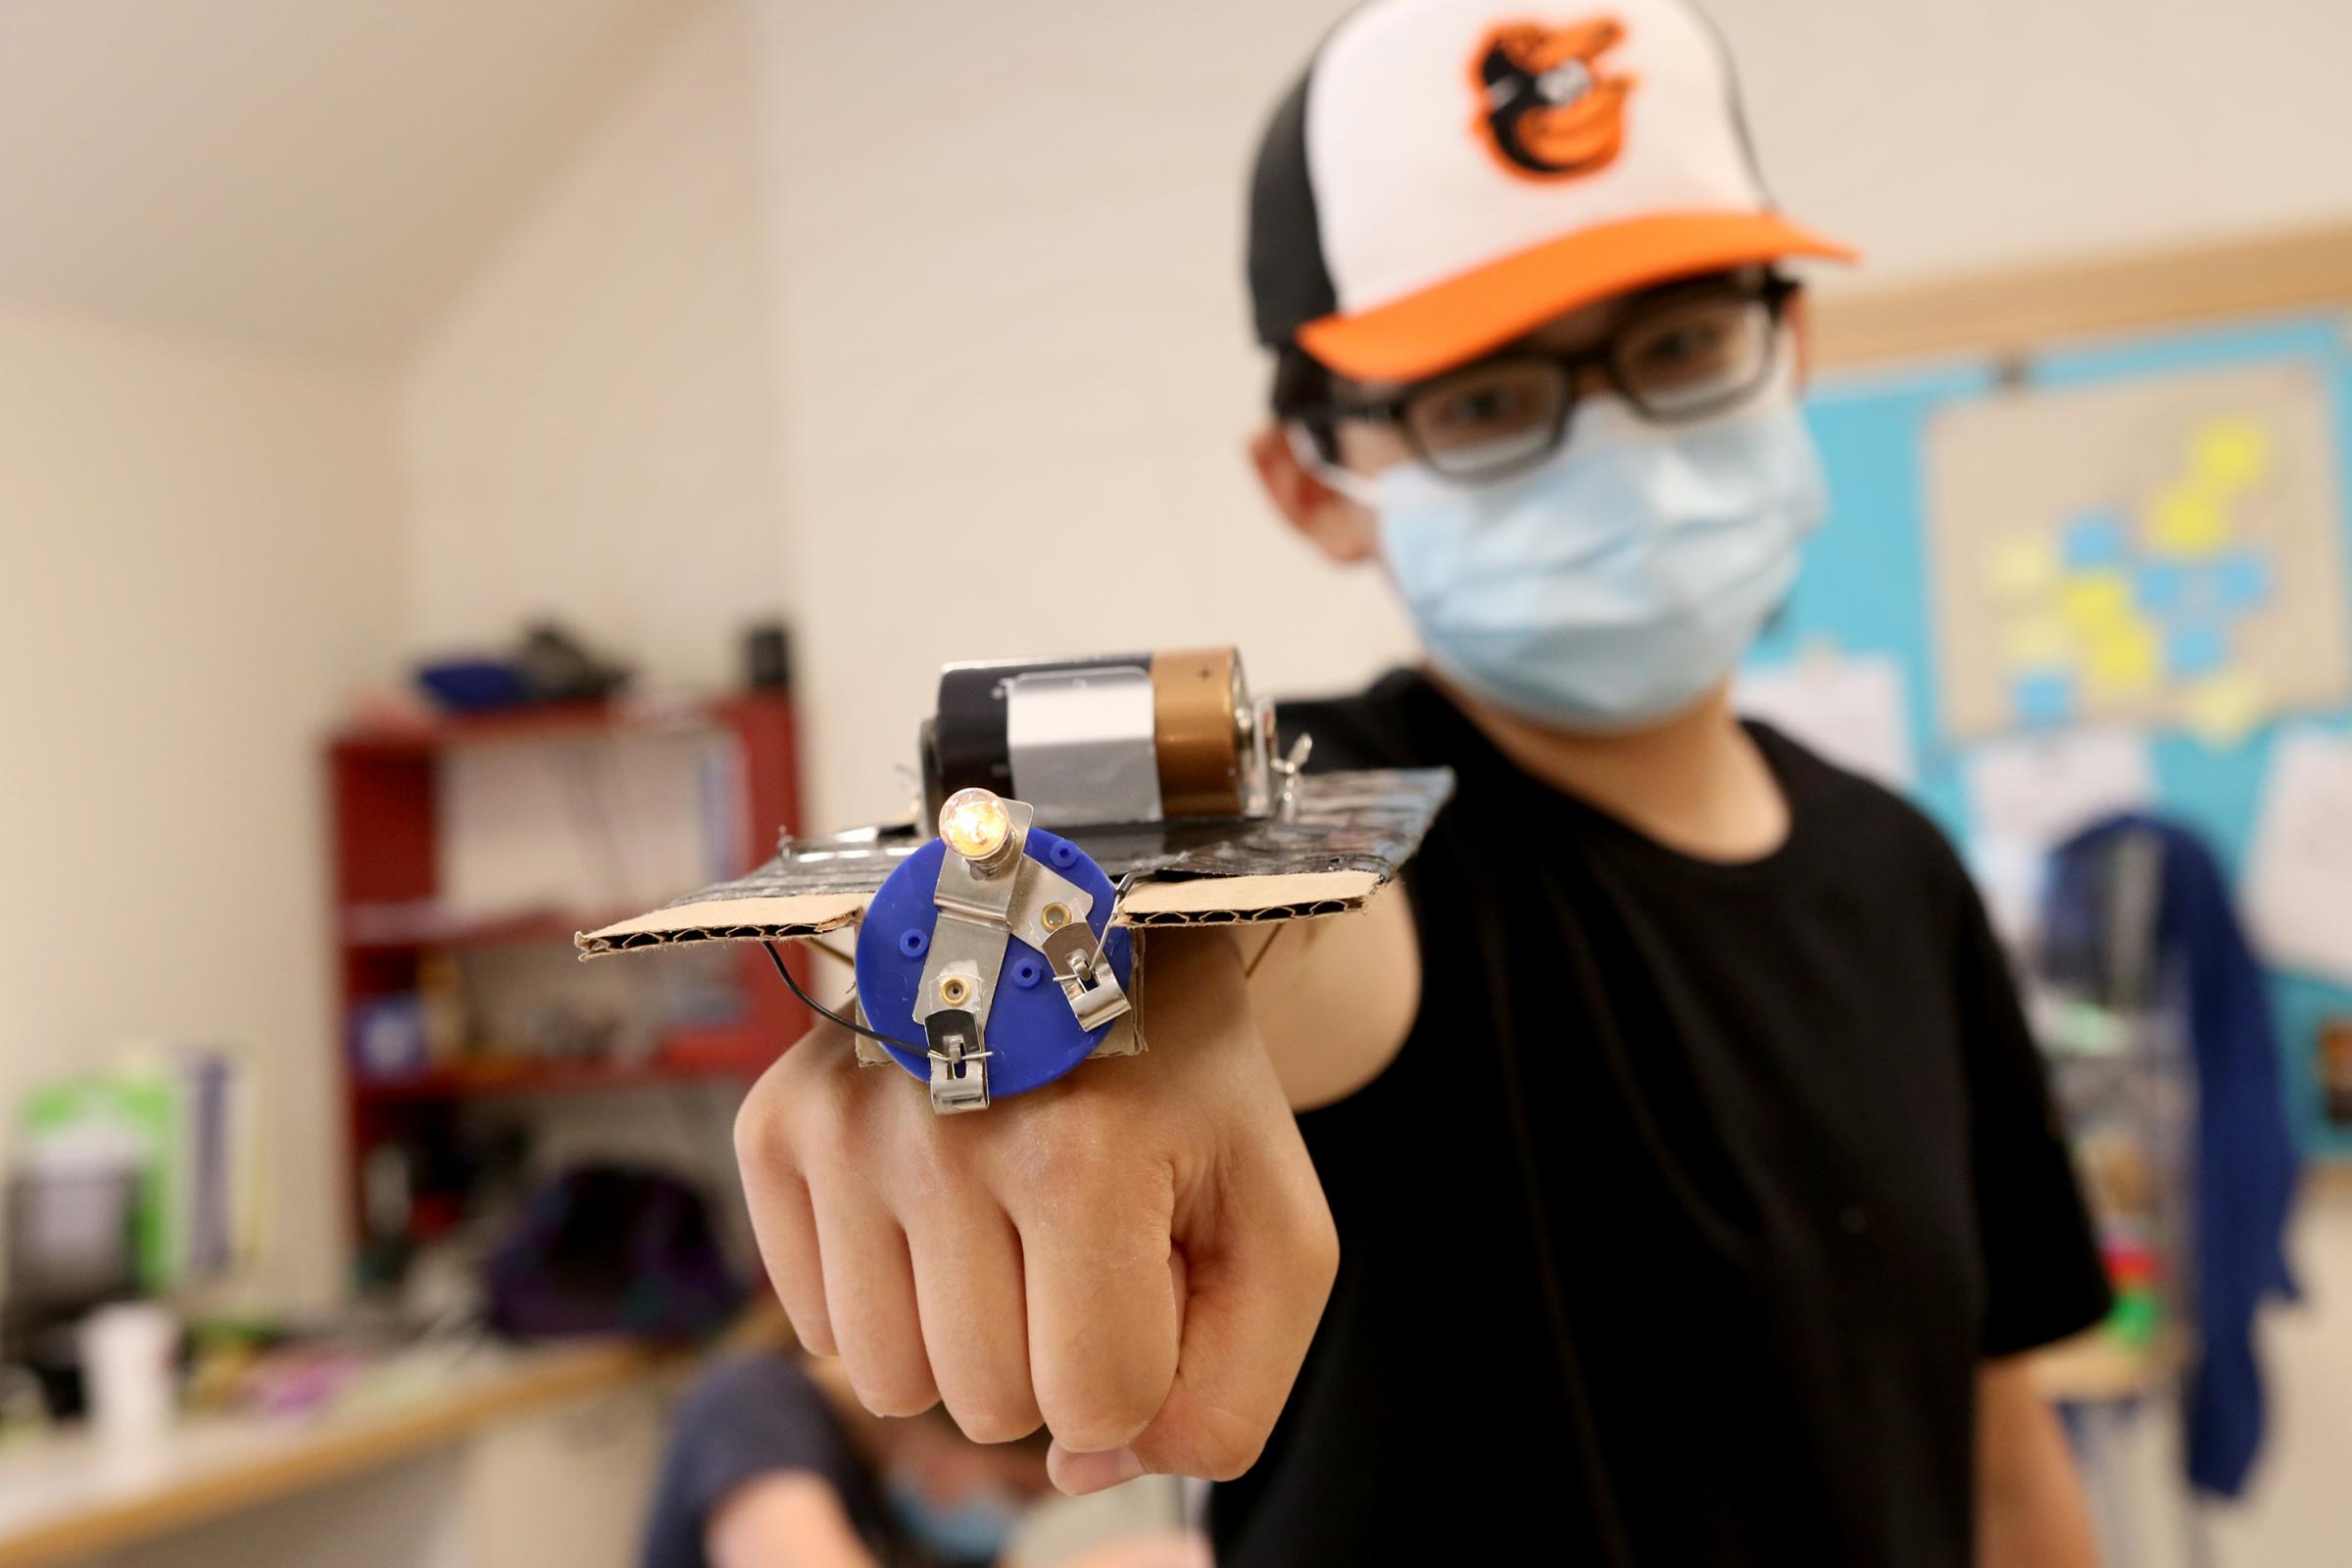 A student shows off the fitness tracker he built